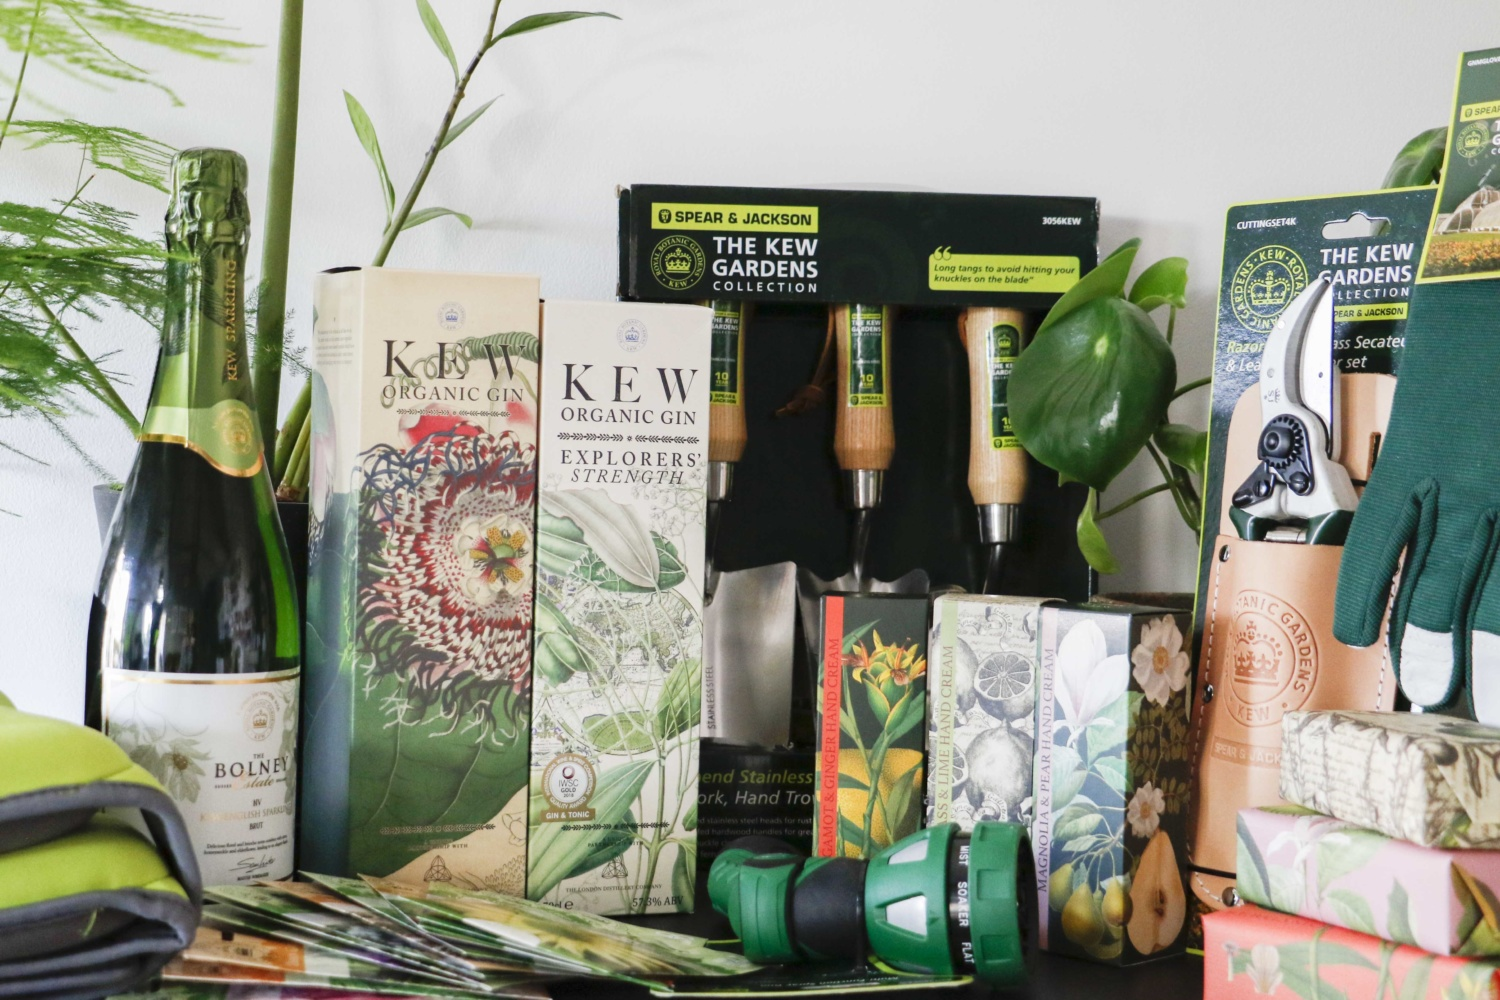 Malvern Garden Buildings' Christmas at Kew Giveaway